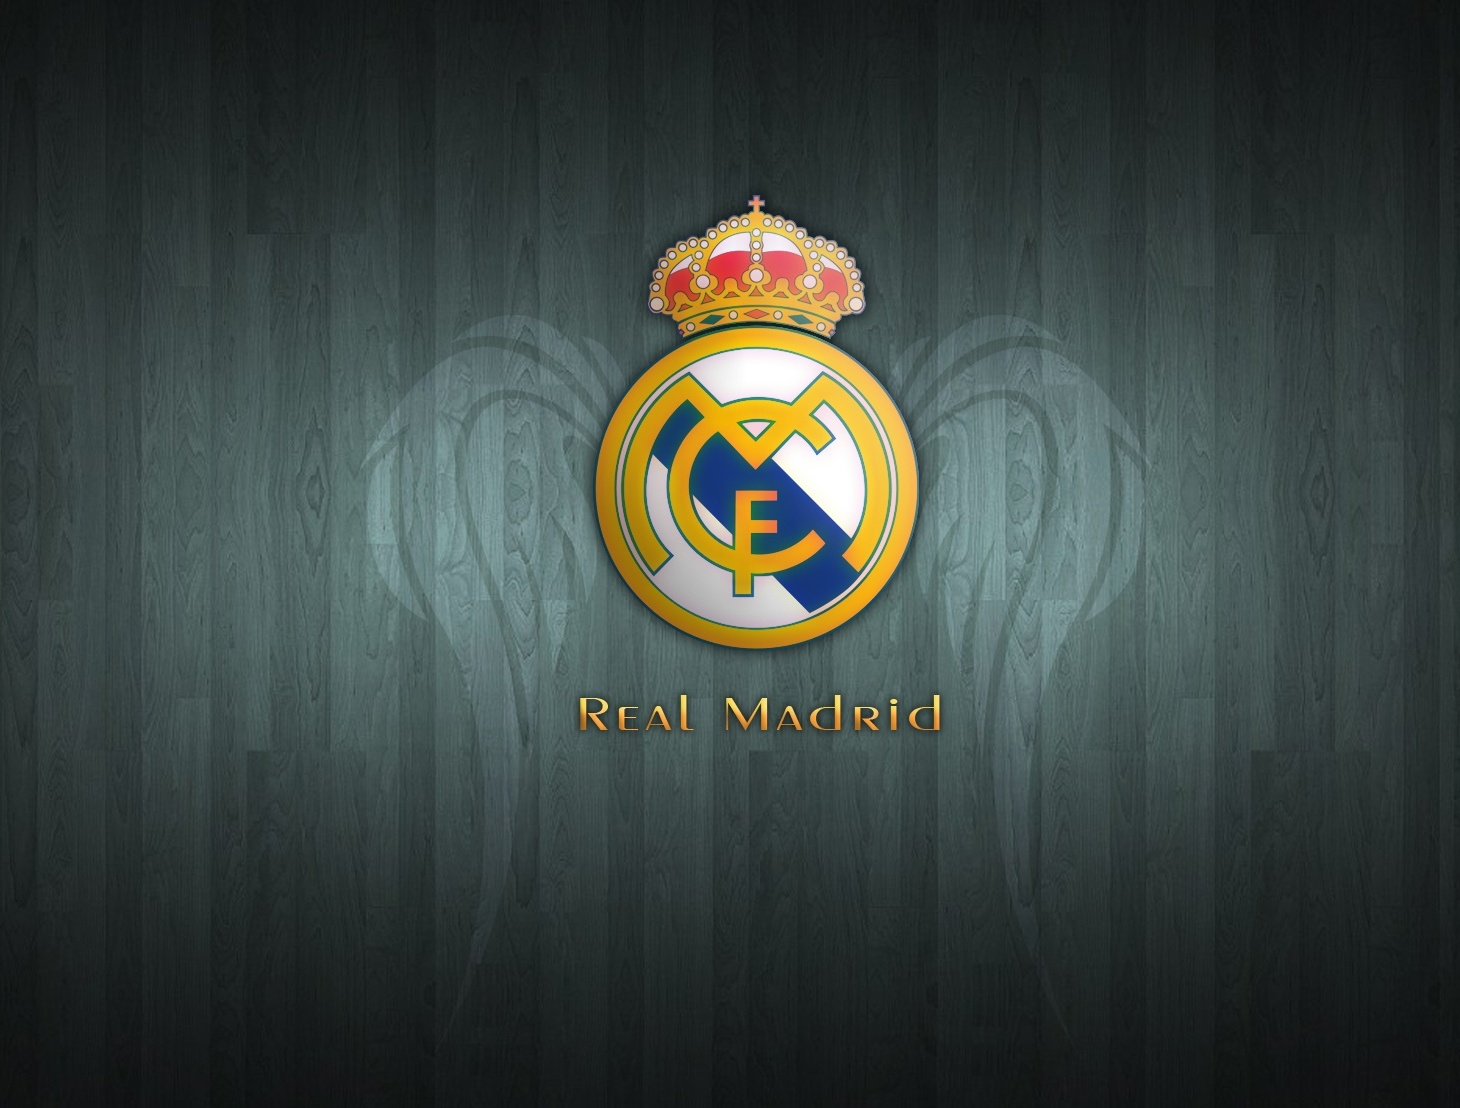 wallpapers hd for mac: Real Madrid Football Club Logo ...